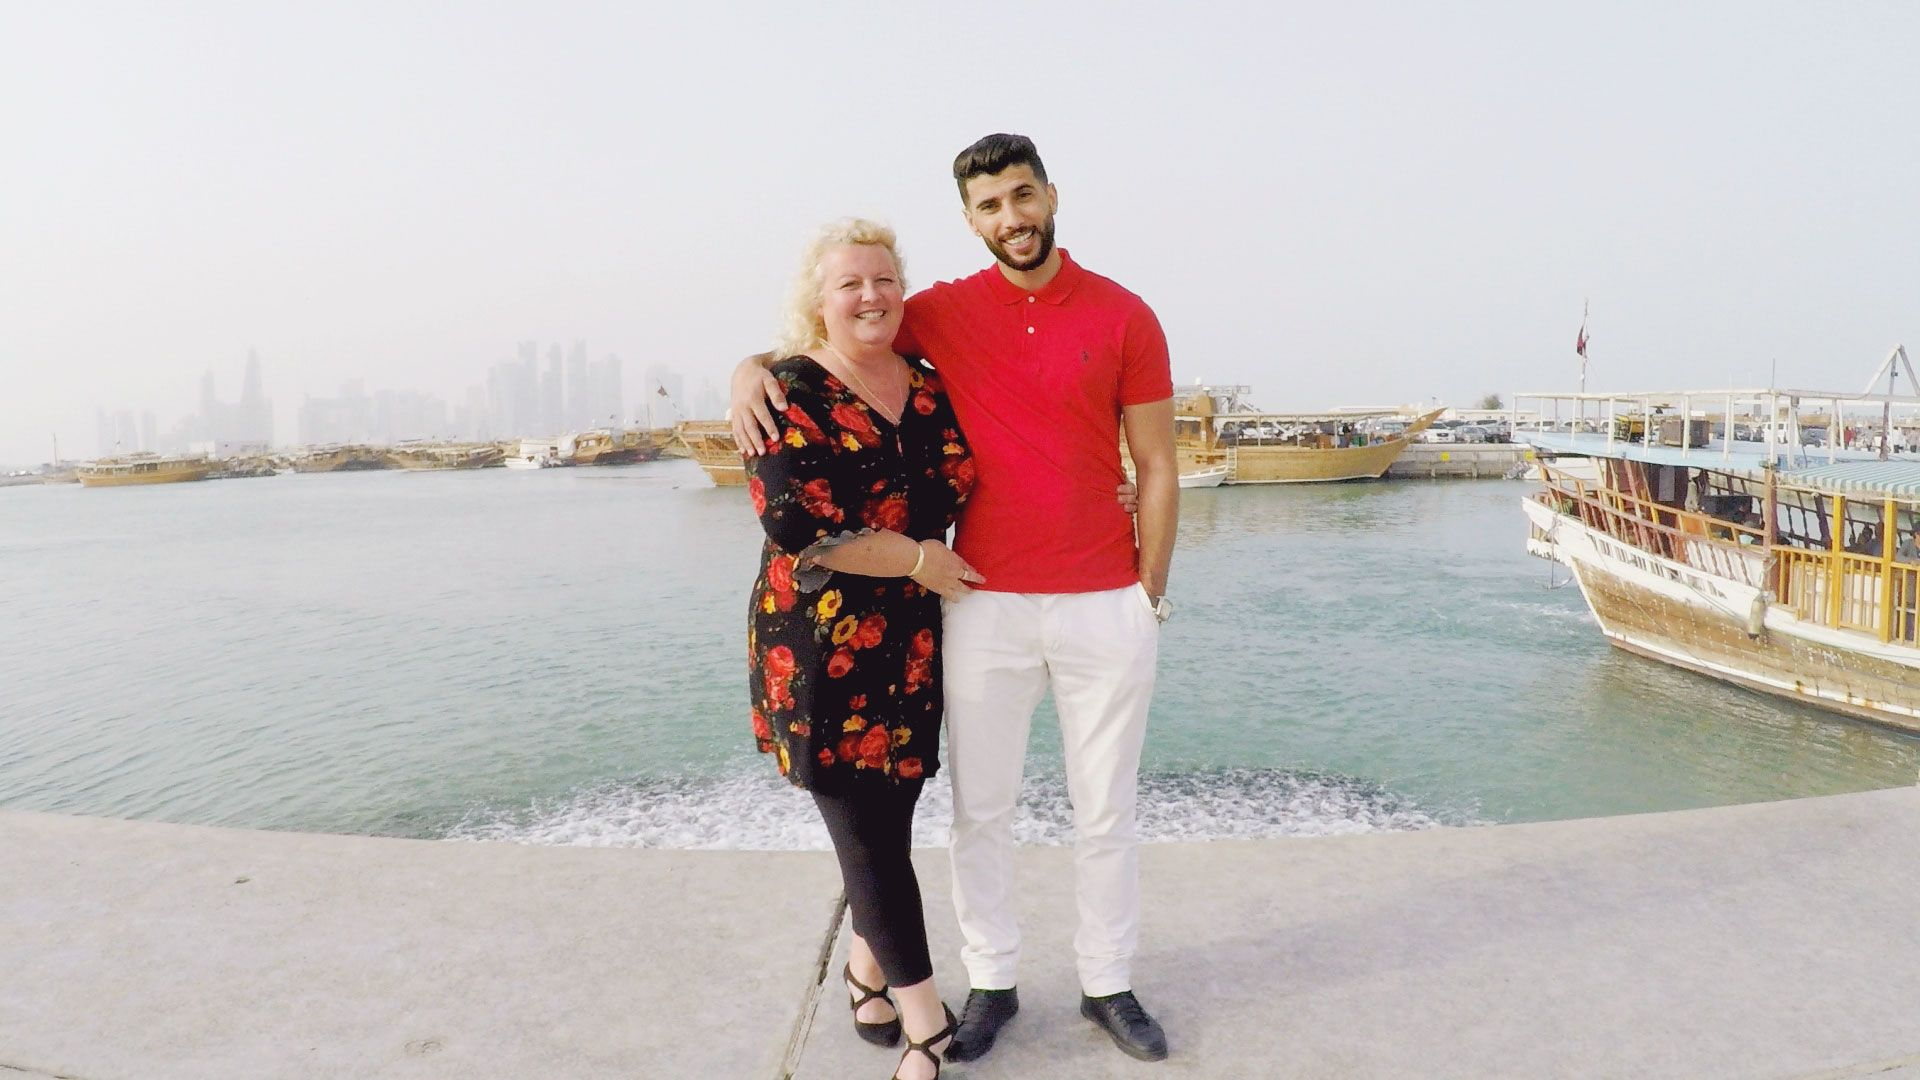 '90 Day Fiancé' Star Aladin Jallali Blasts Trolls Who Age- And Body-Shamed His Wife